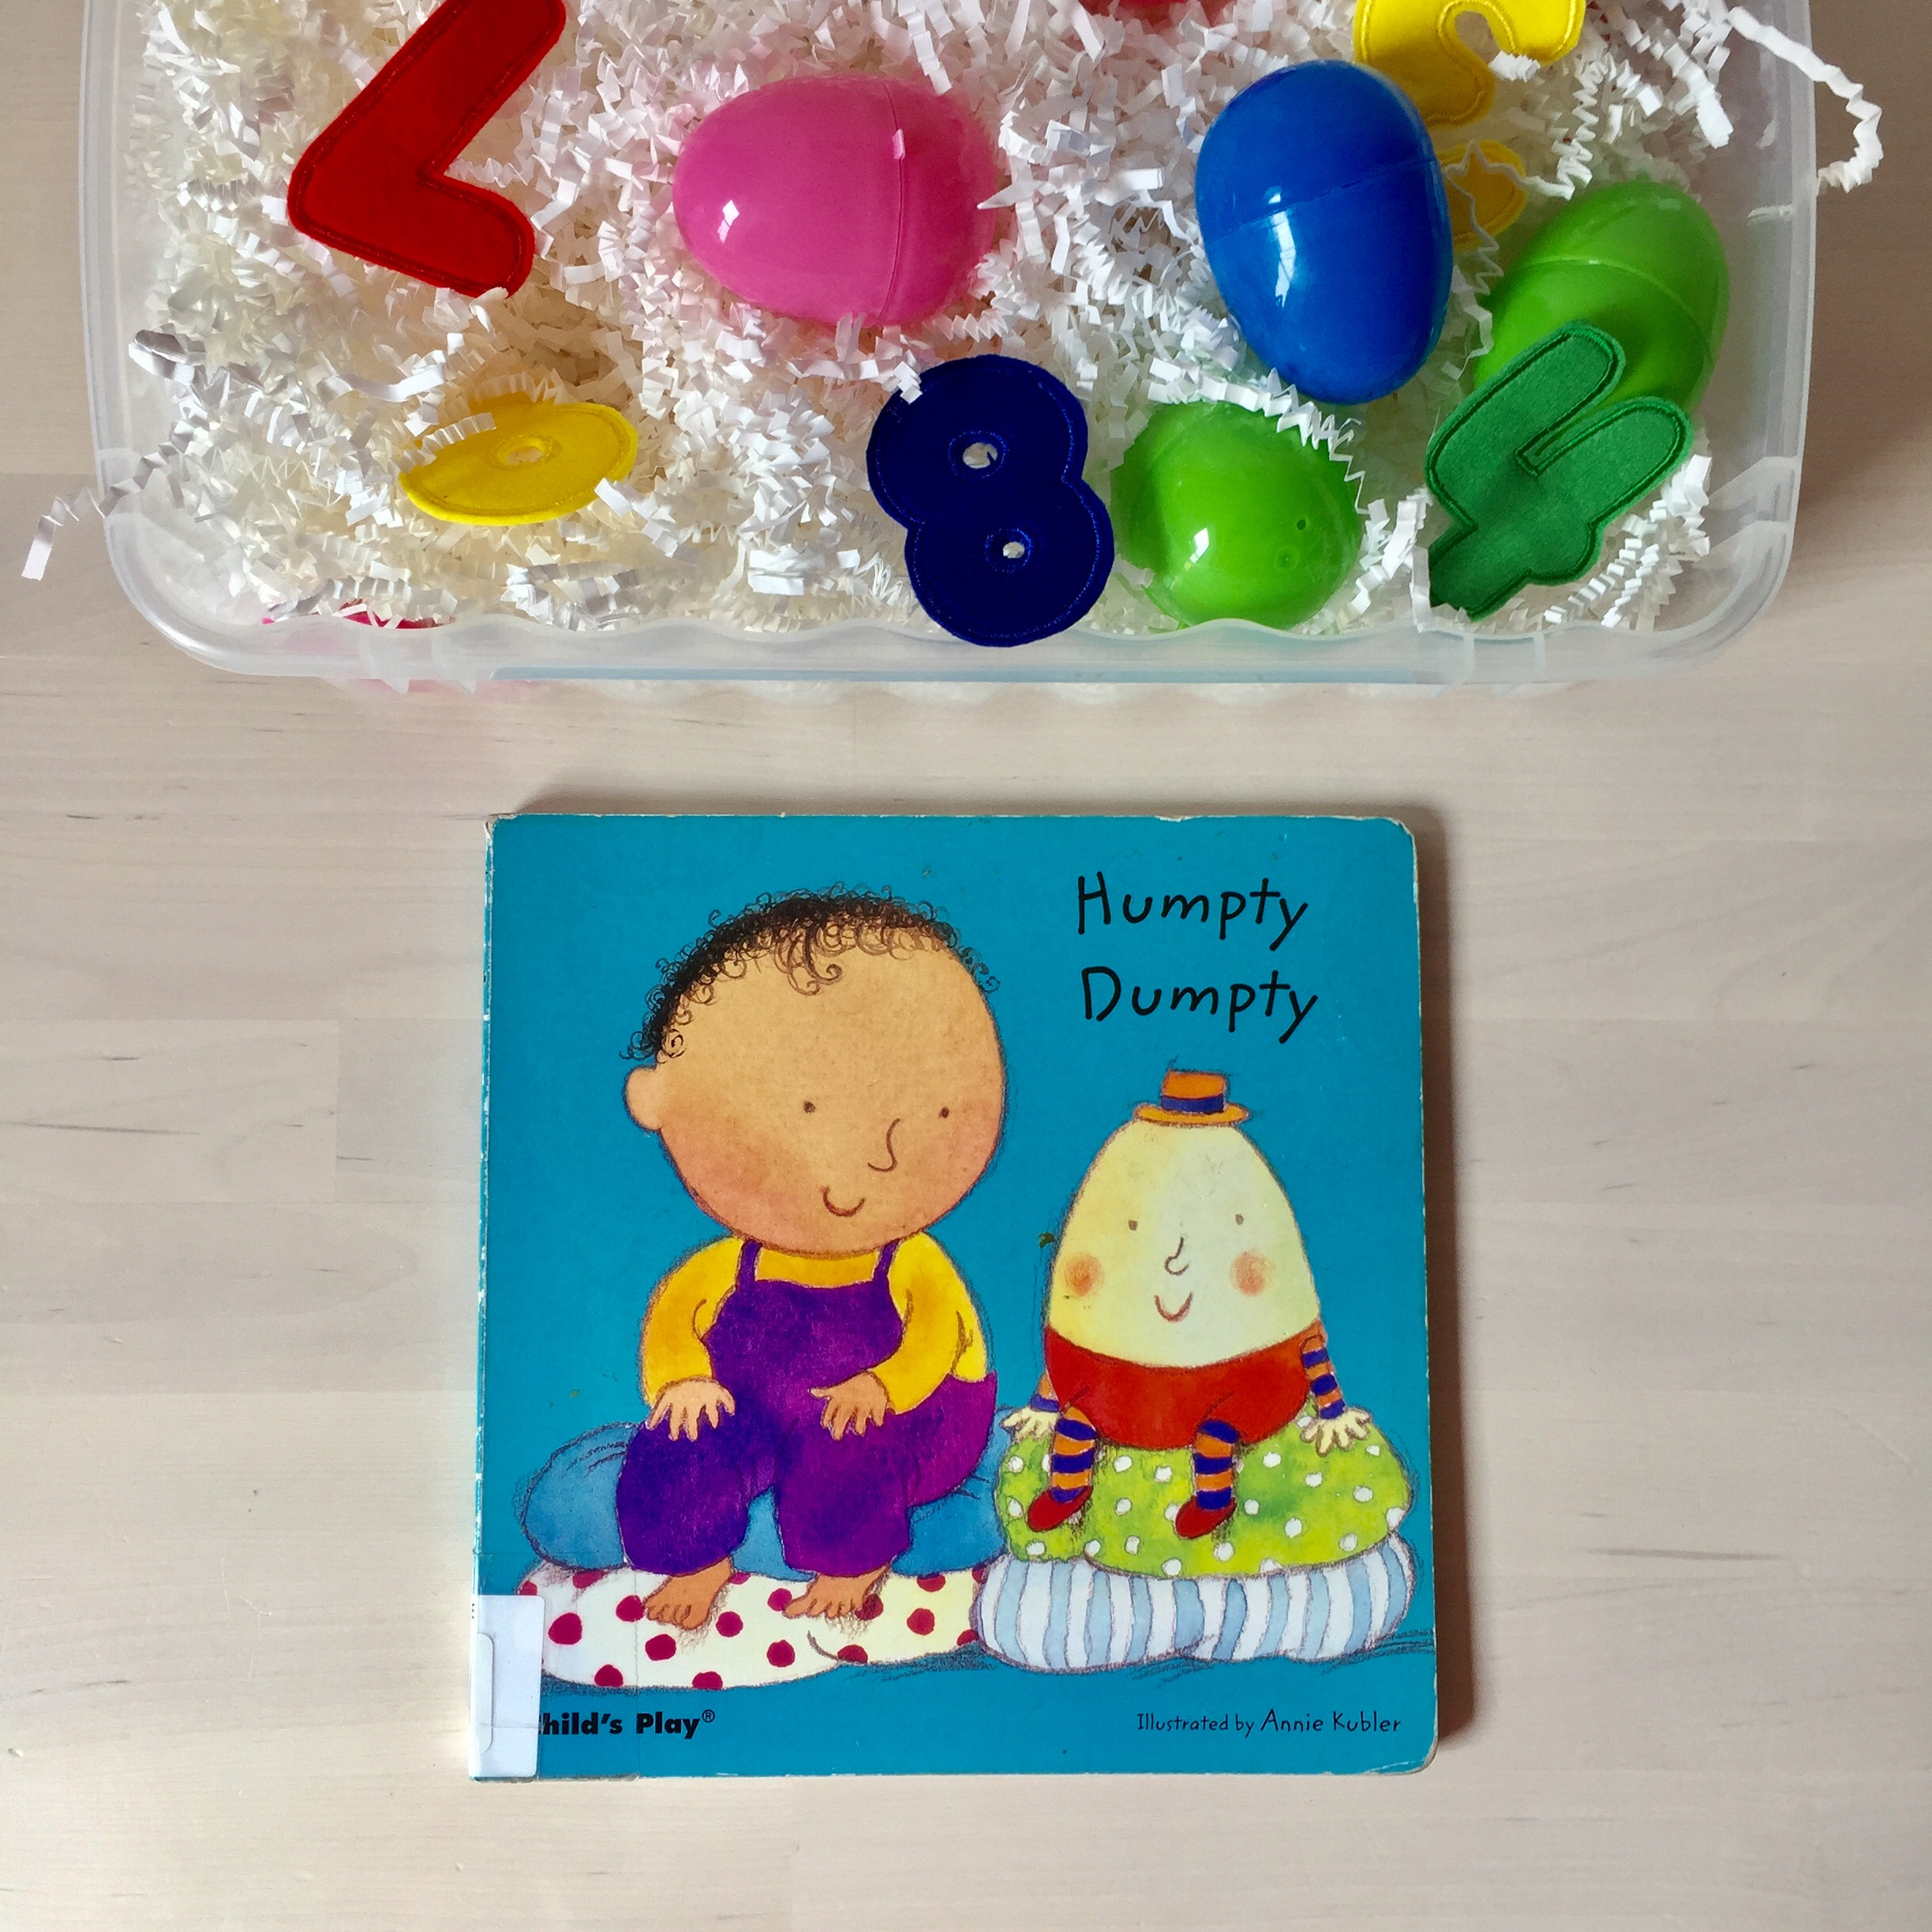 humpty dumpty storytime and sensory bin story time for babies and toddlers